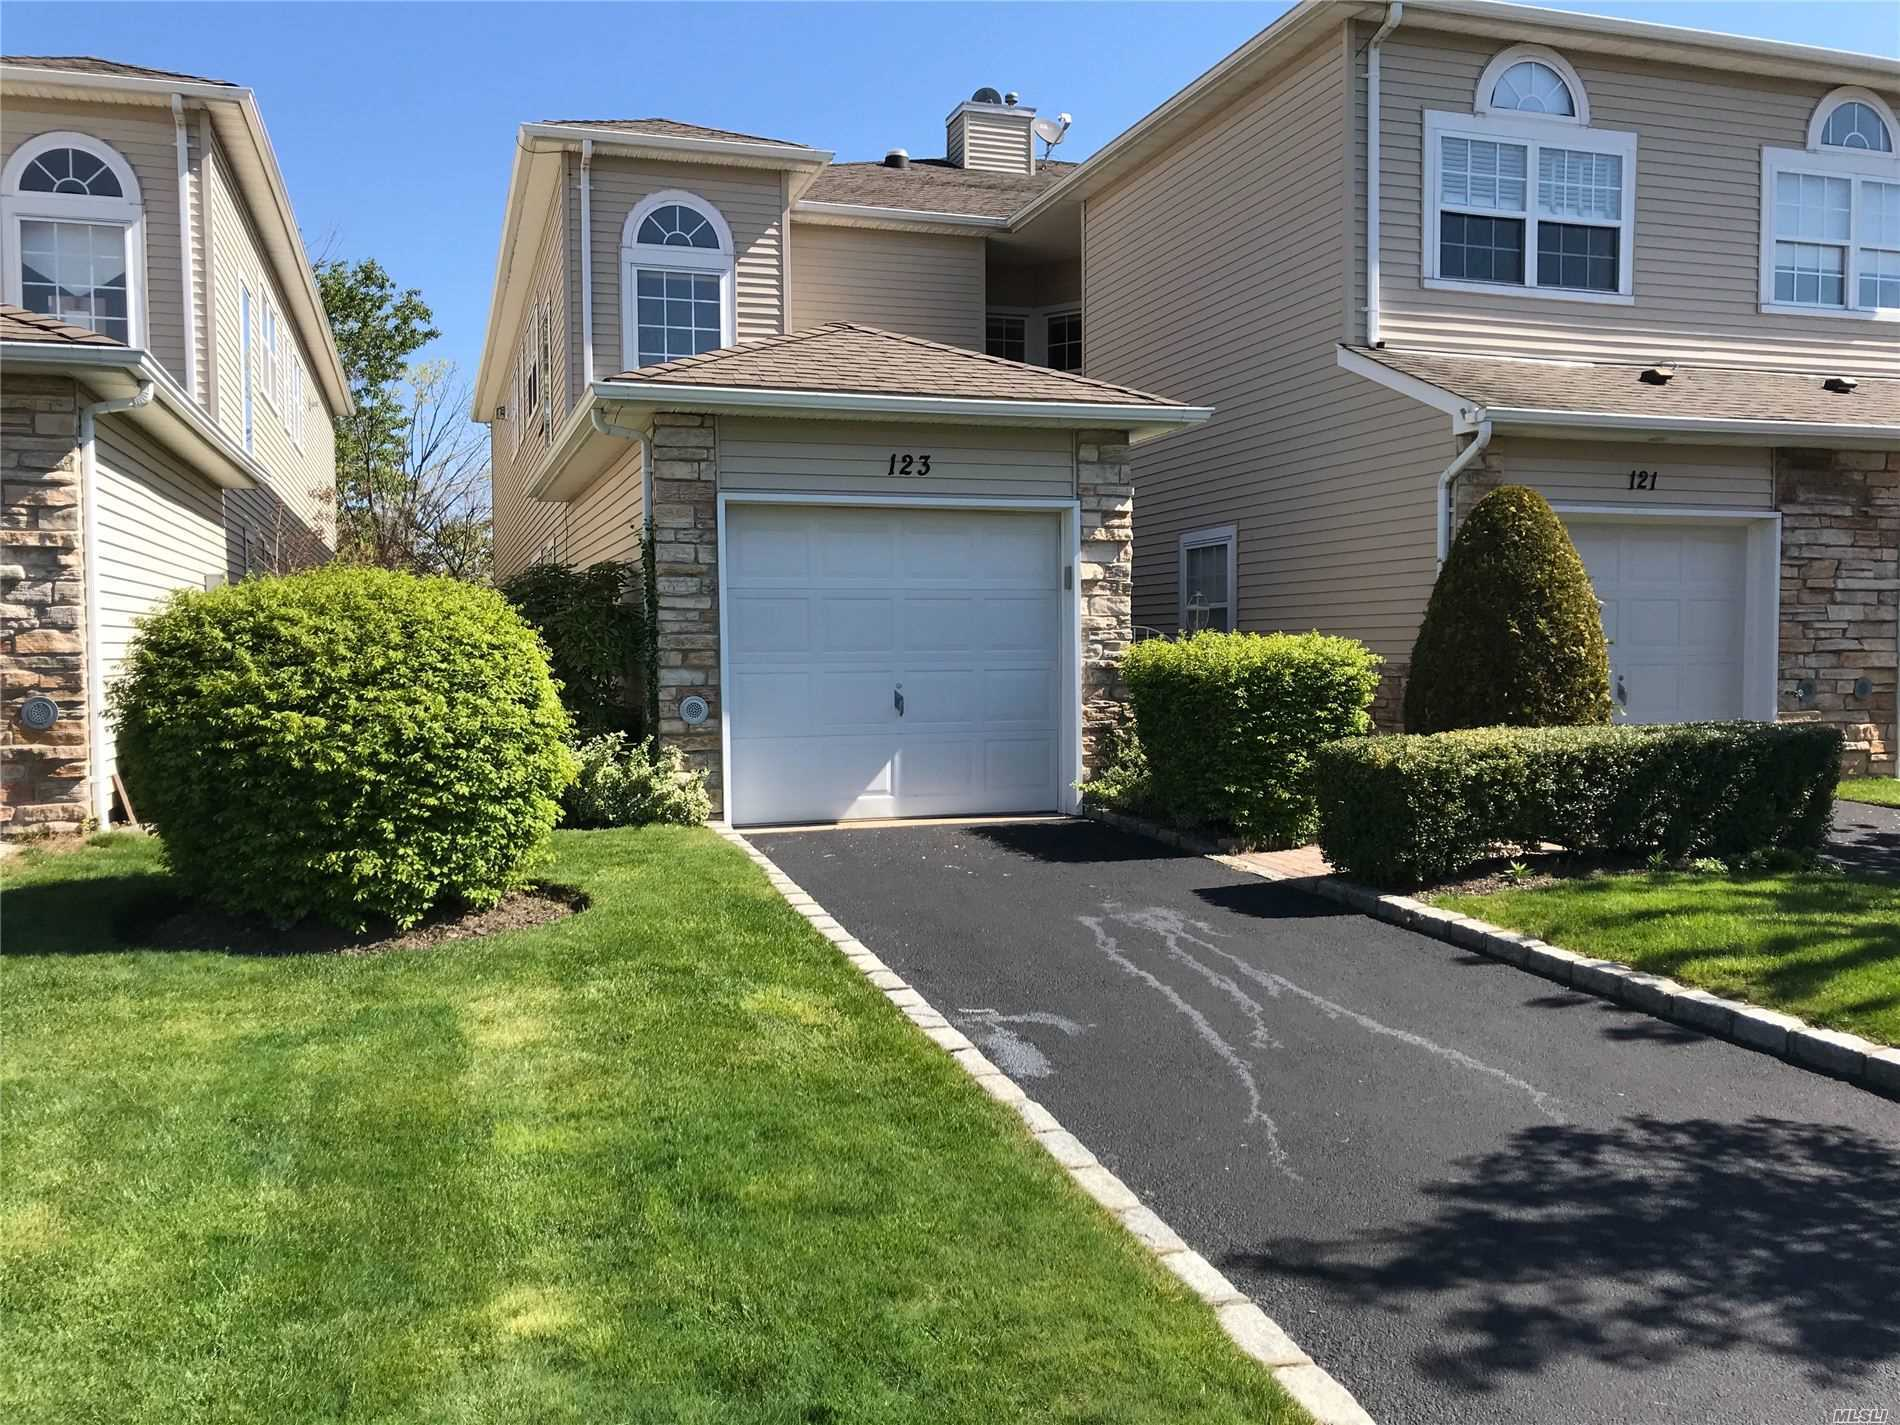 Property for sale at 123 Windwatch Drive, Hauppauge NY 11788, Hauppauge,  New York 11788